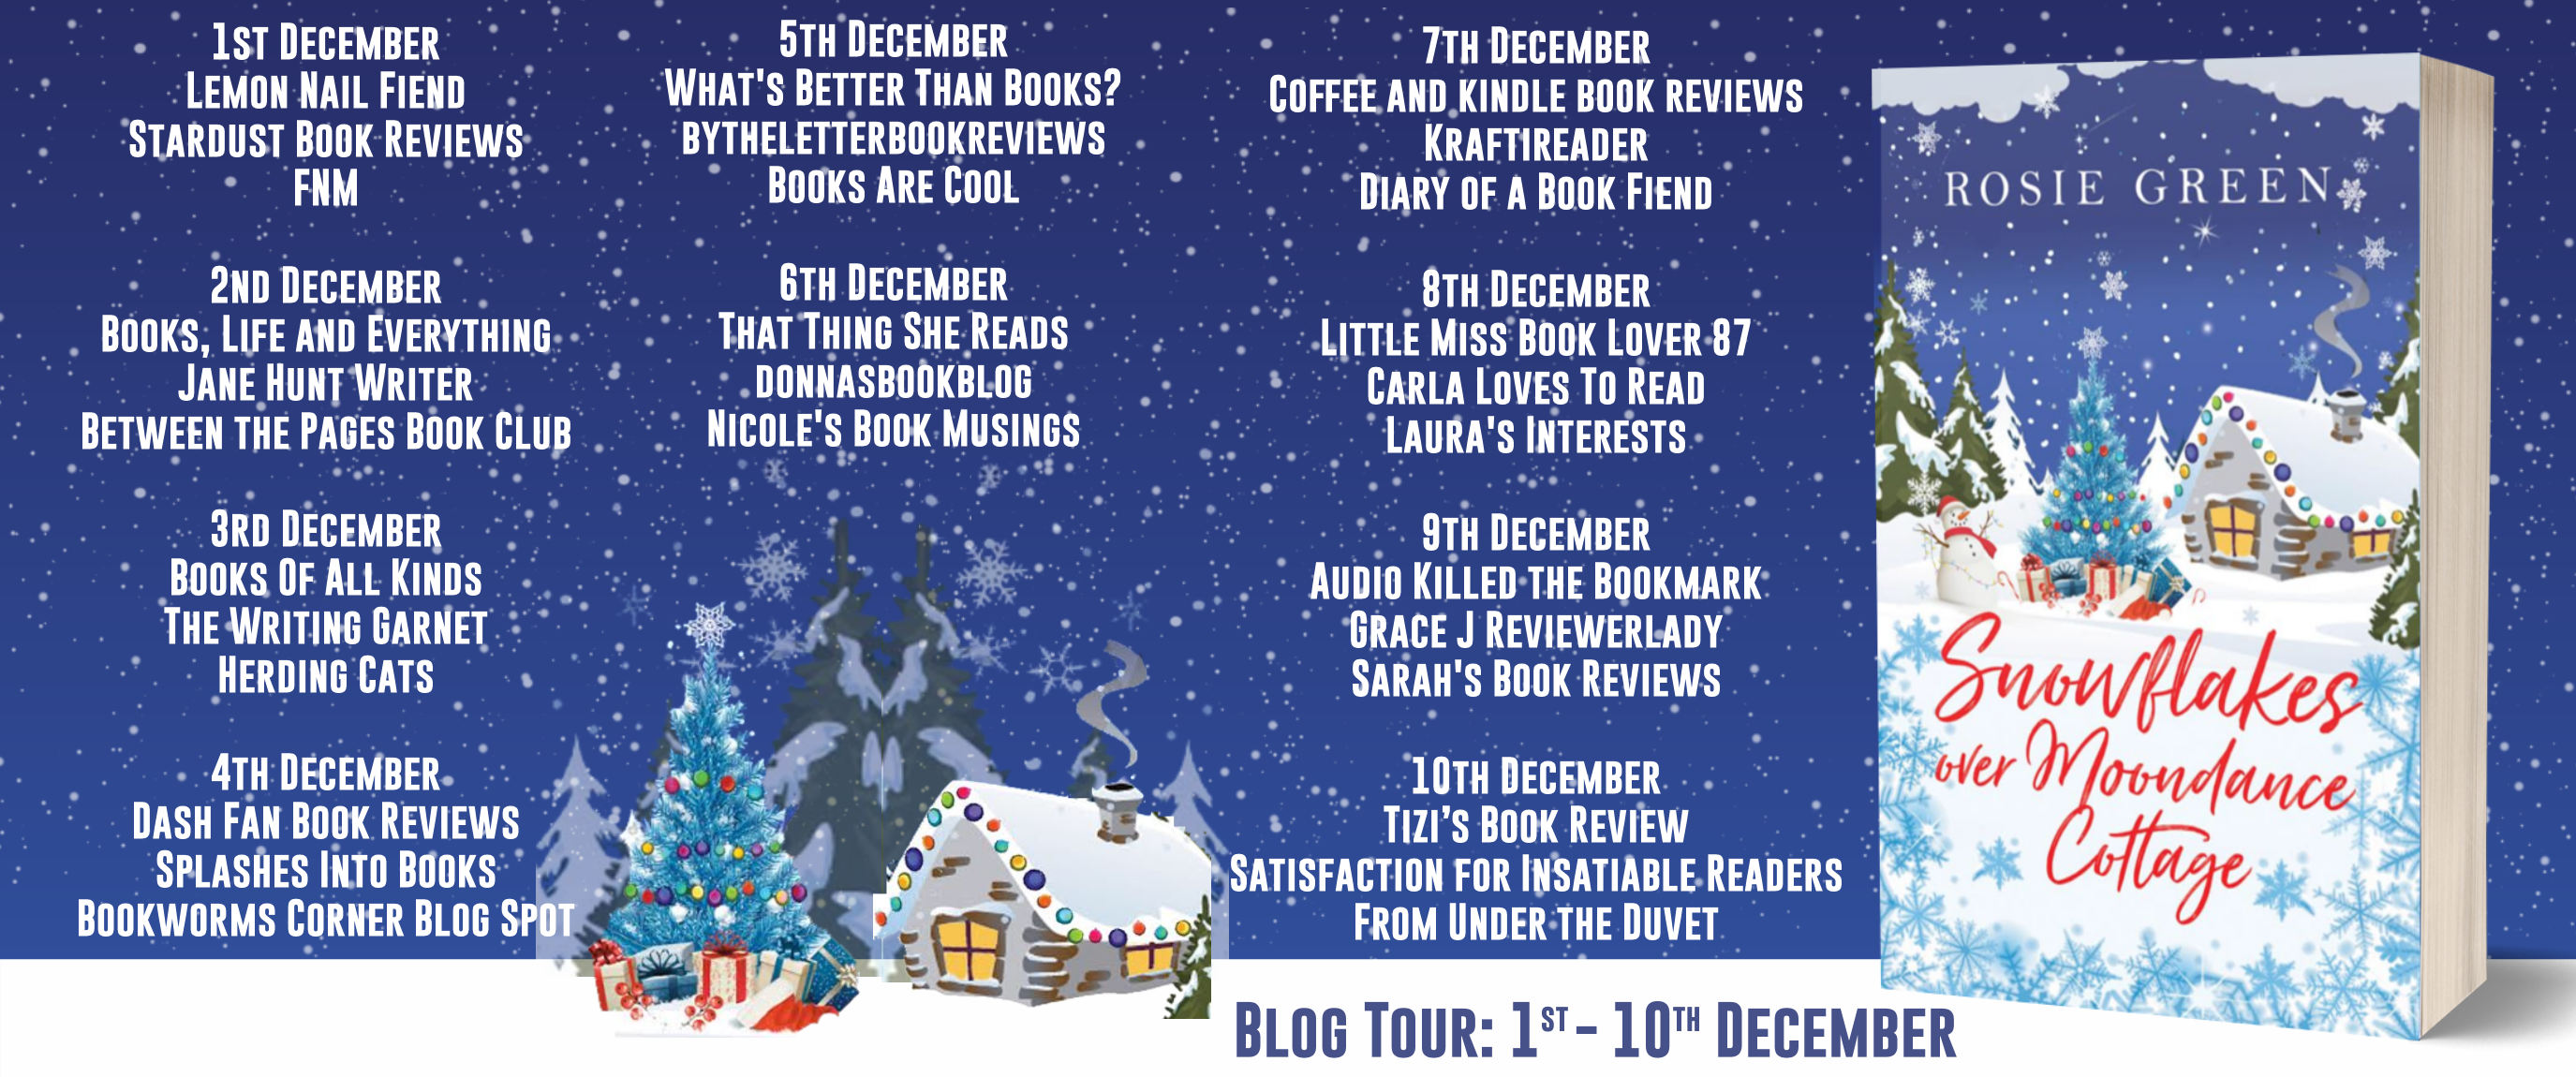 Snowflakes Over Moondance Cottage Full Tour Banner